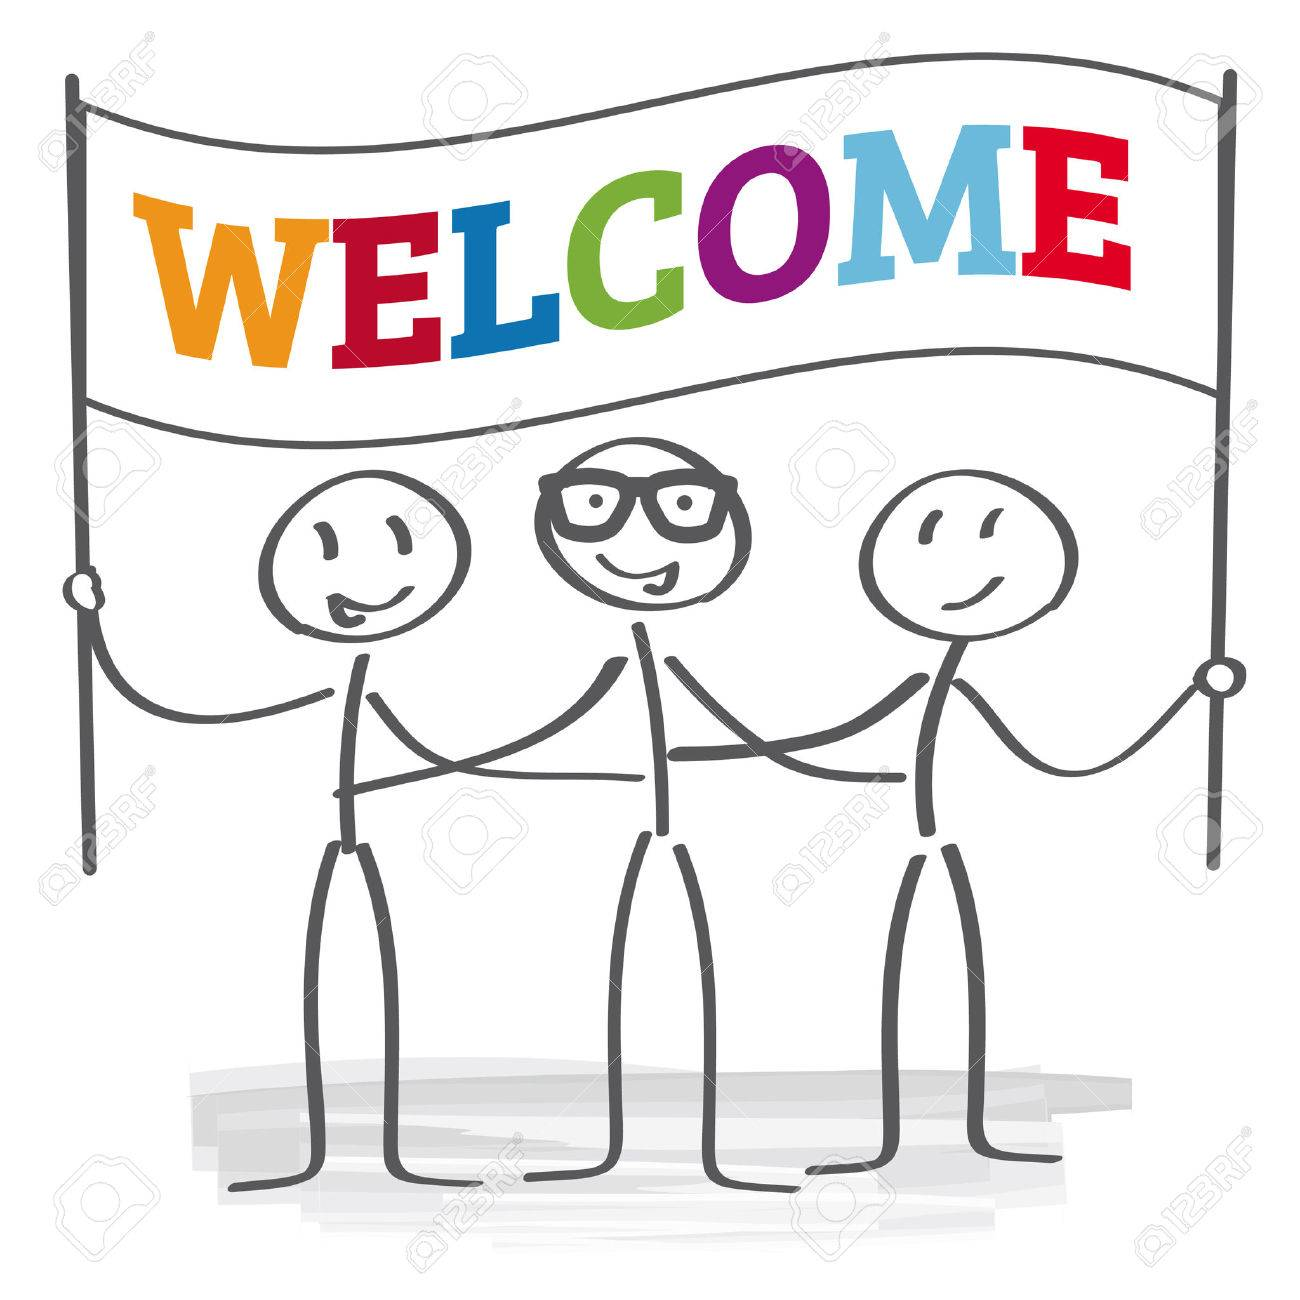 stick figures holding welcome sign.